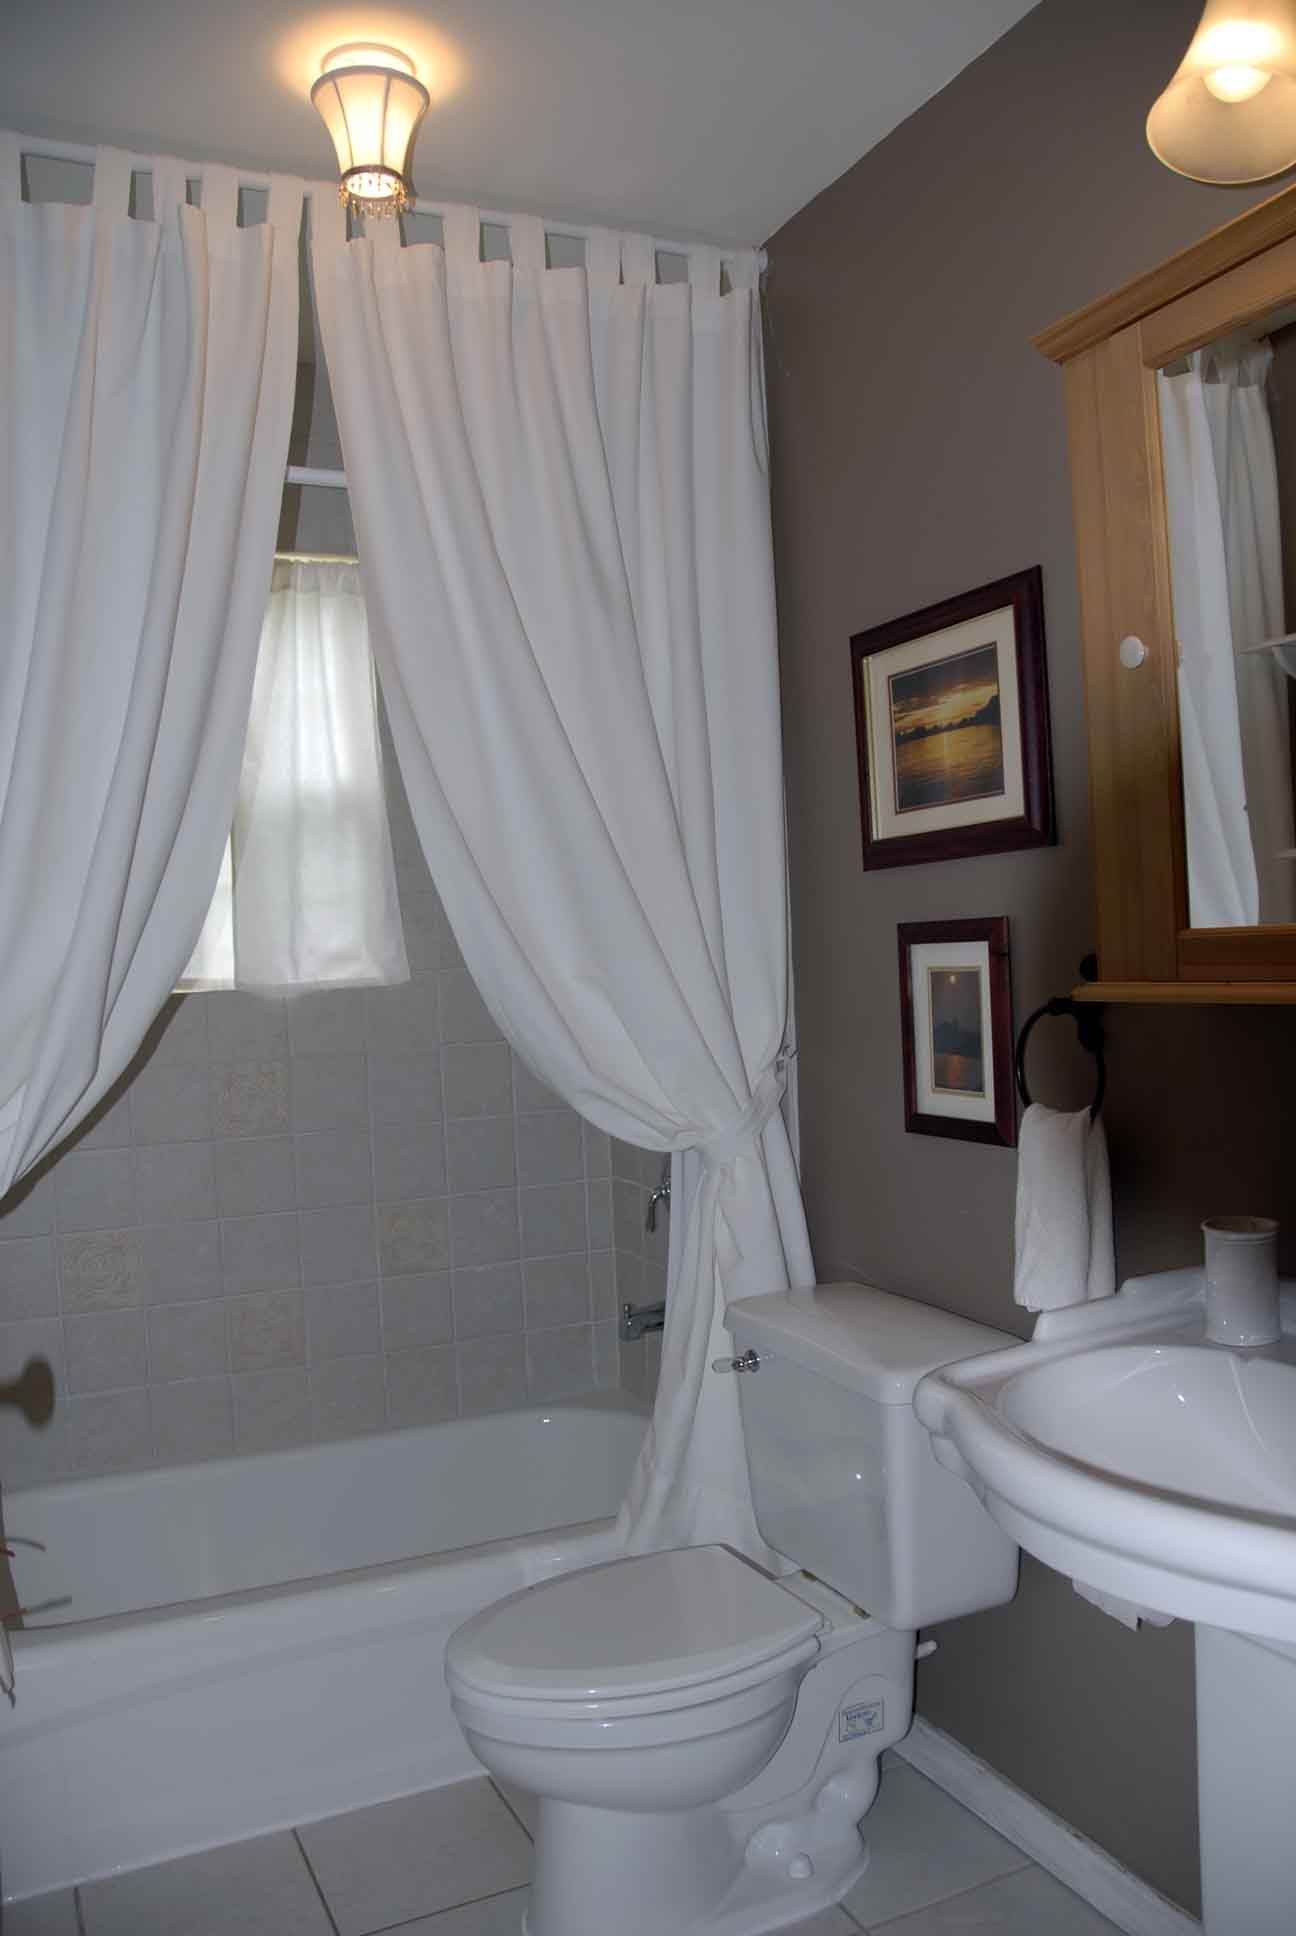 Guest Bathroom Shower Ideas guest bathroom designs | large third bedroom. shown with queen